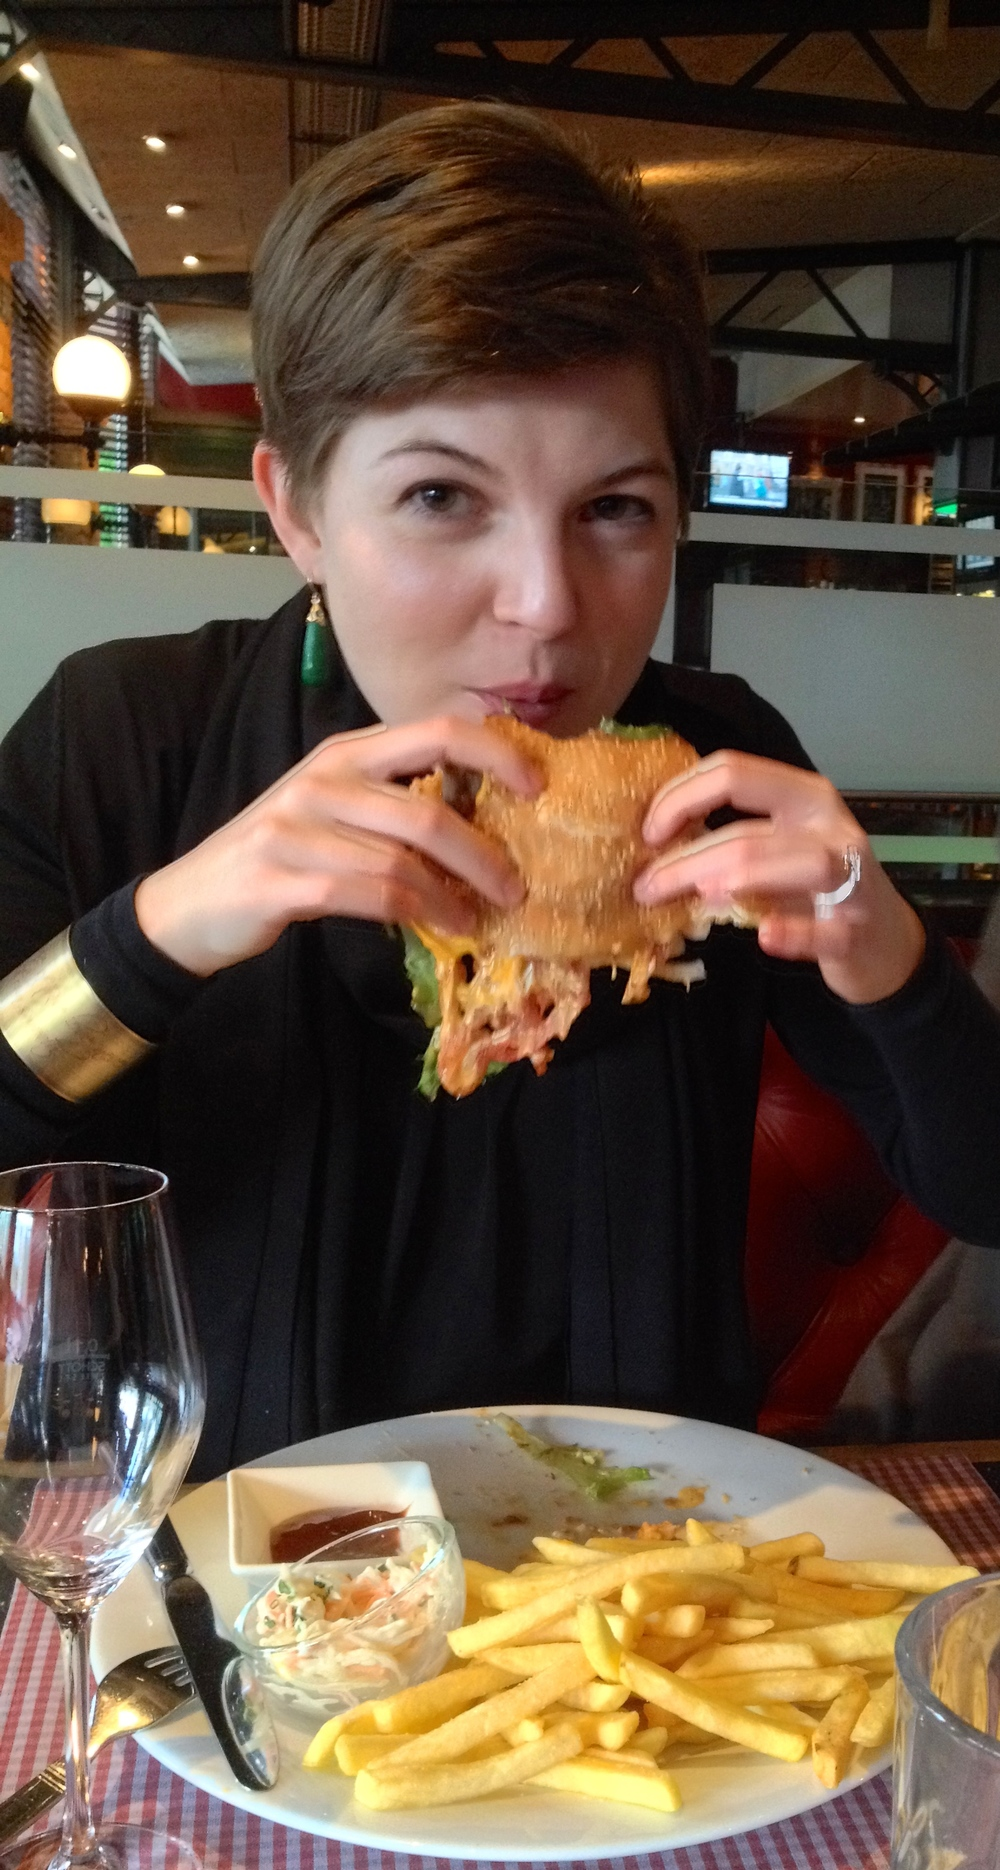 Me enjoying a very messy burger one evening after work